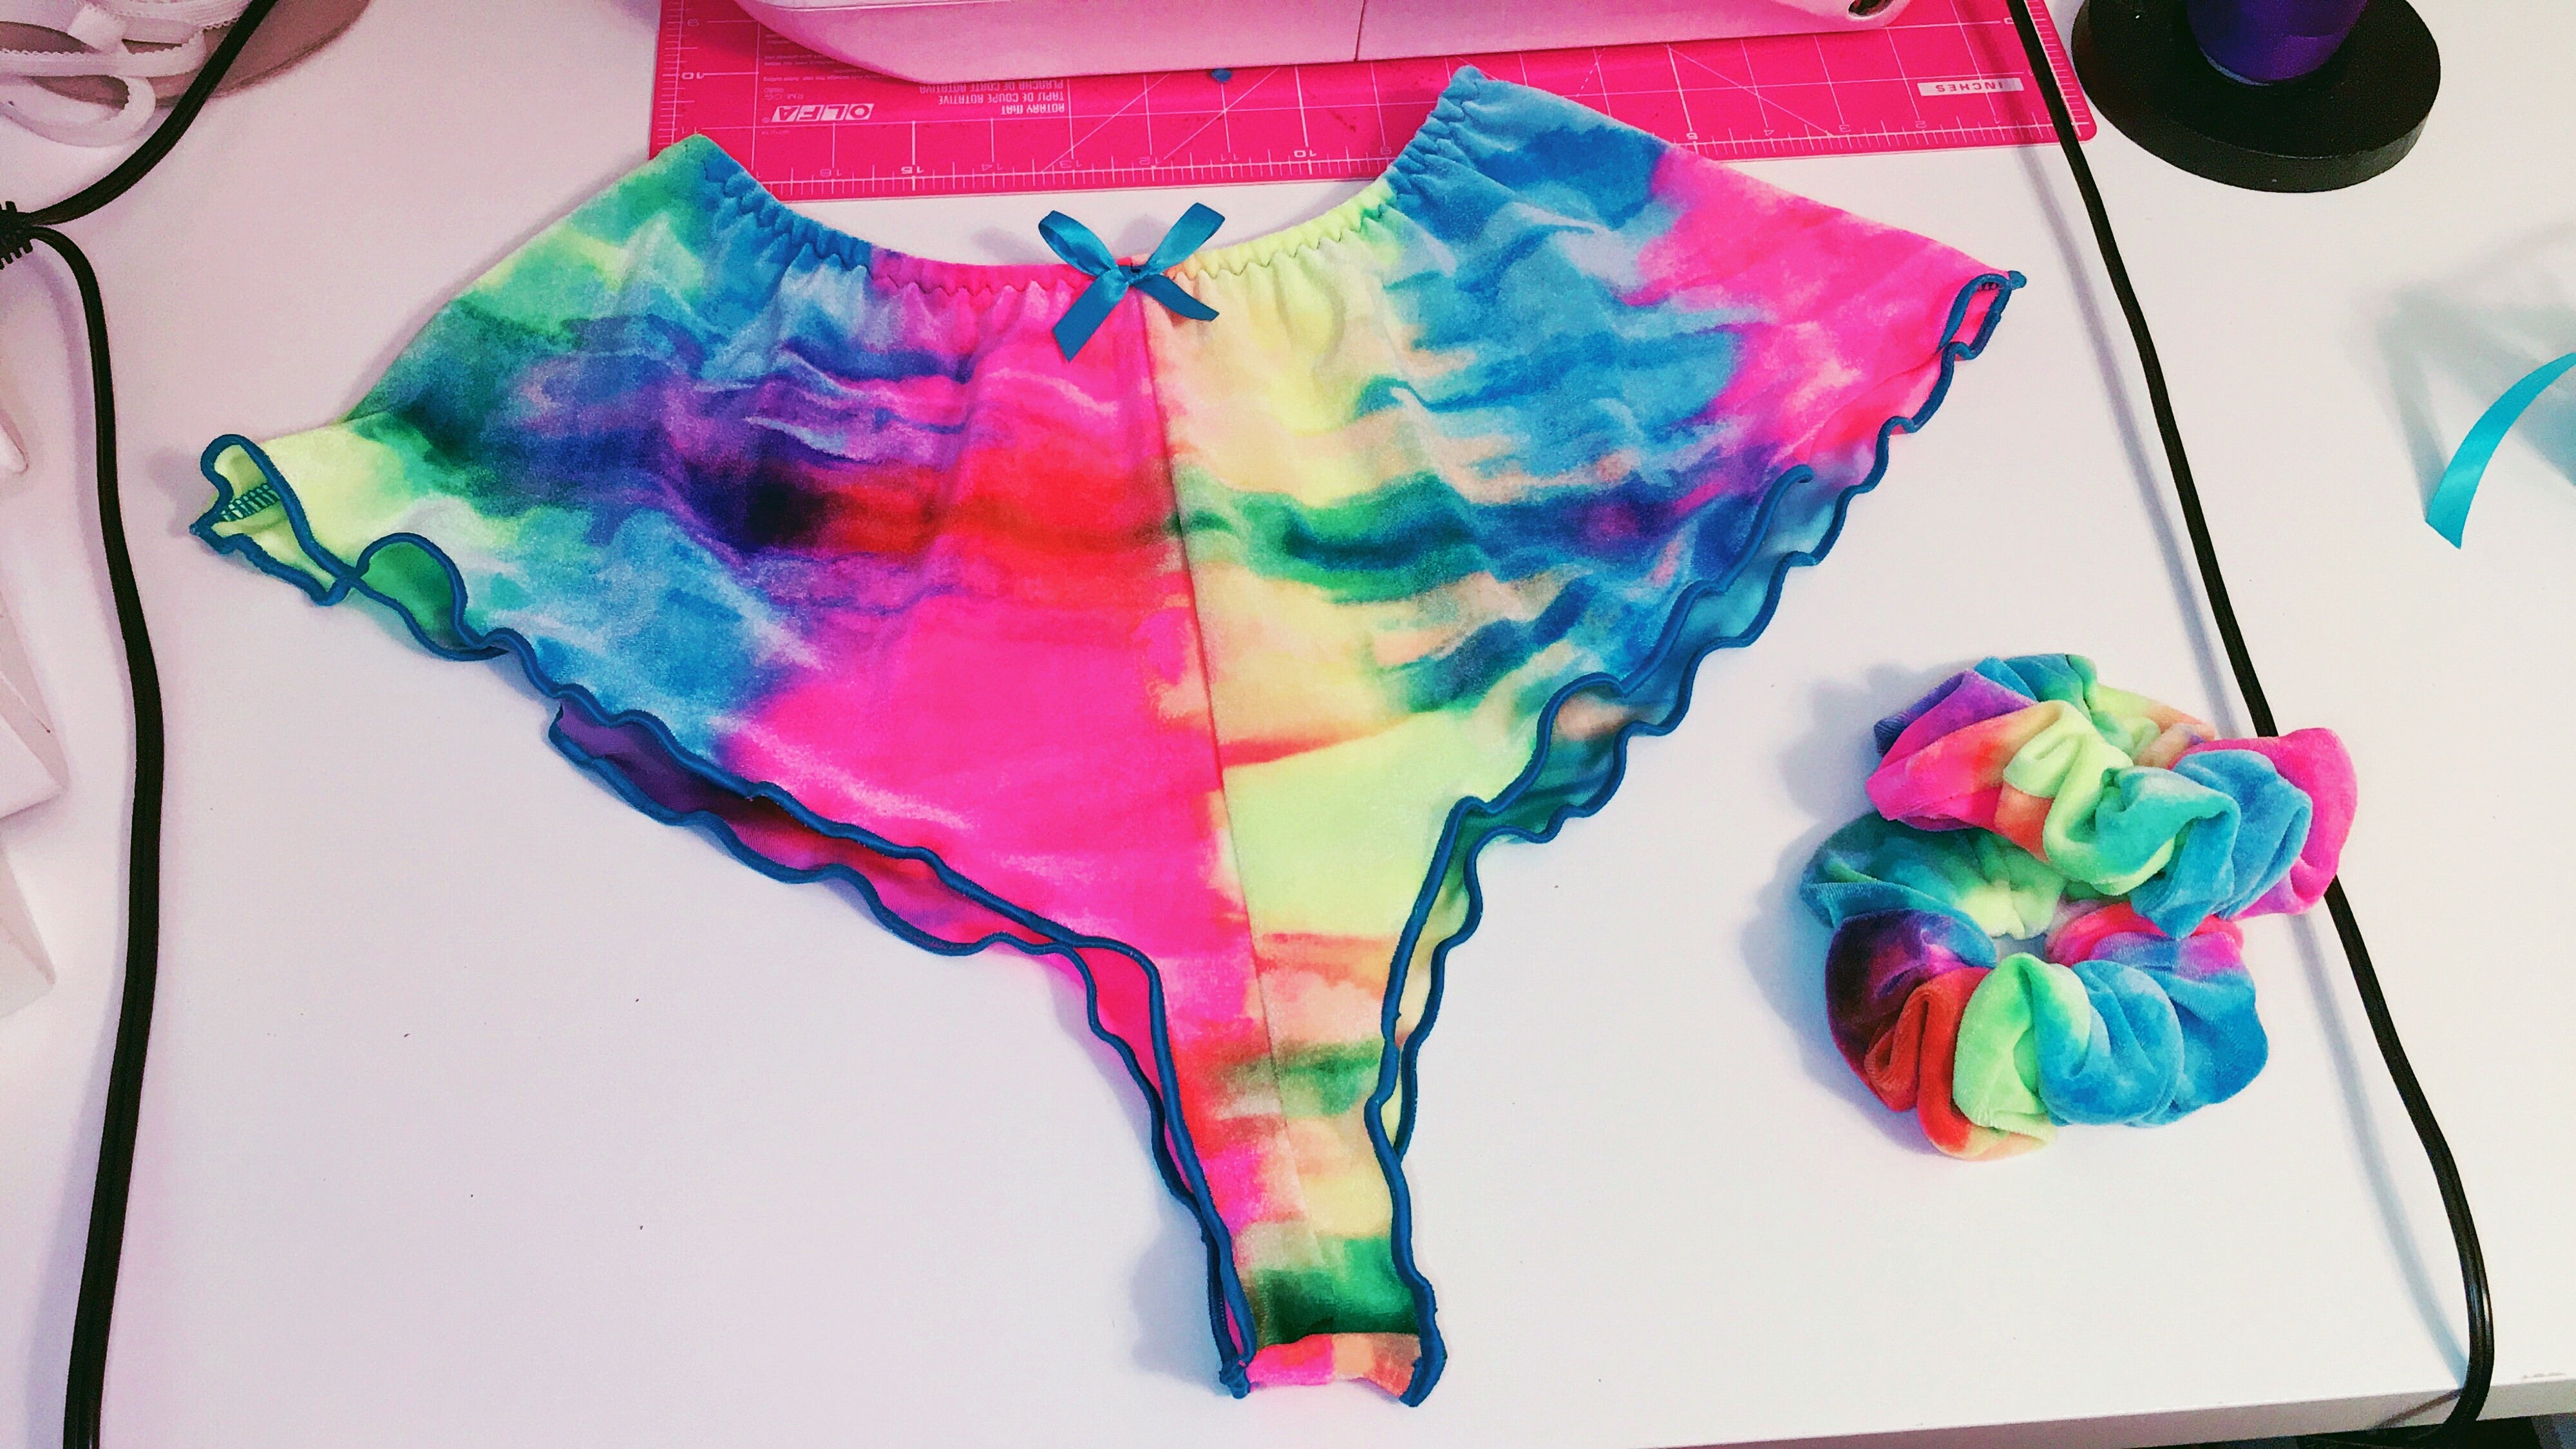 Alexandrea Anissa Josie Short - Cotton Candy Tie Dye Velvet